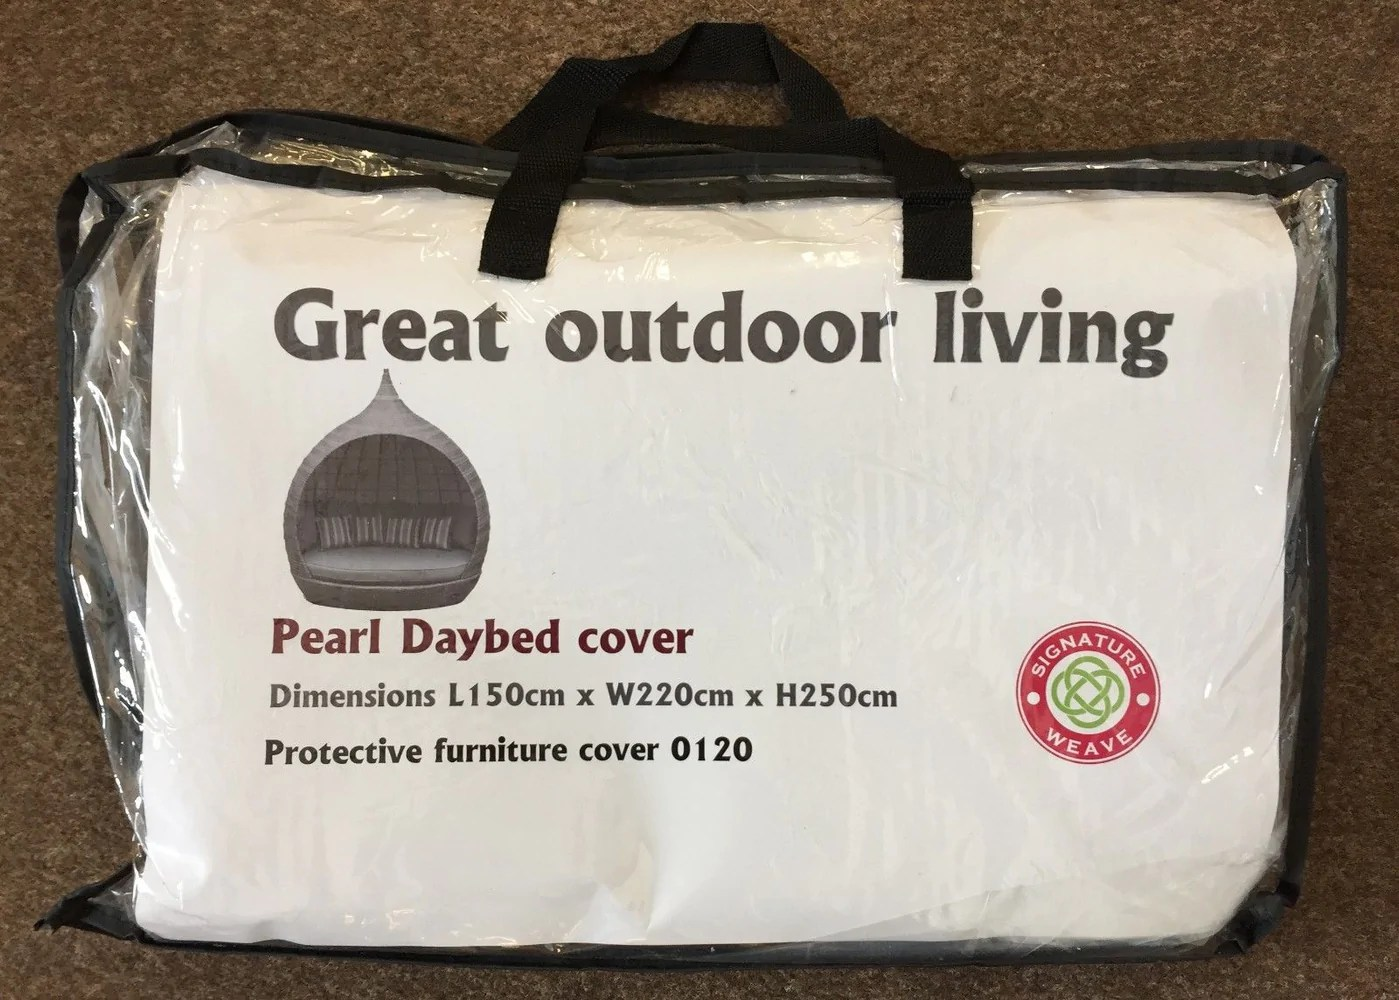 Pearl Daybed Outdoor Pearl Day Bed Cover Only